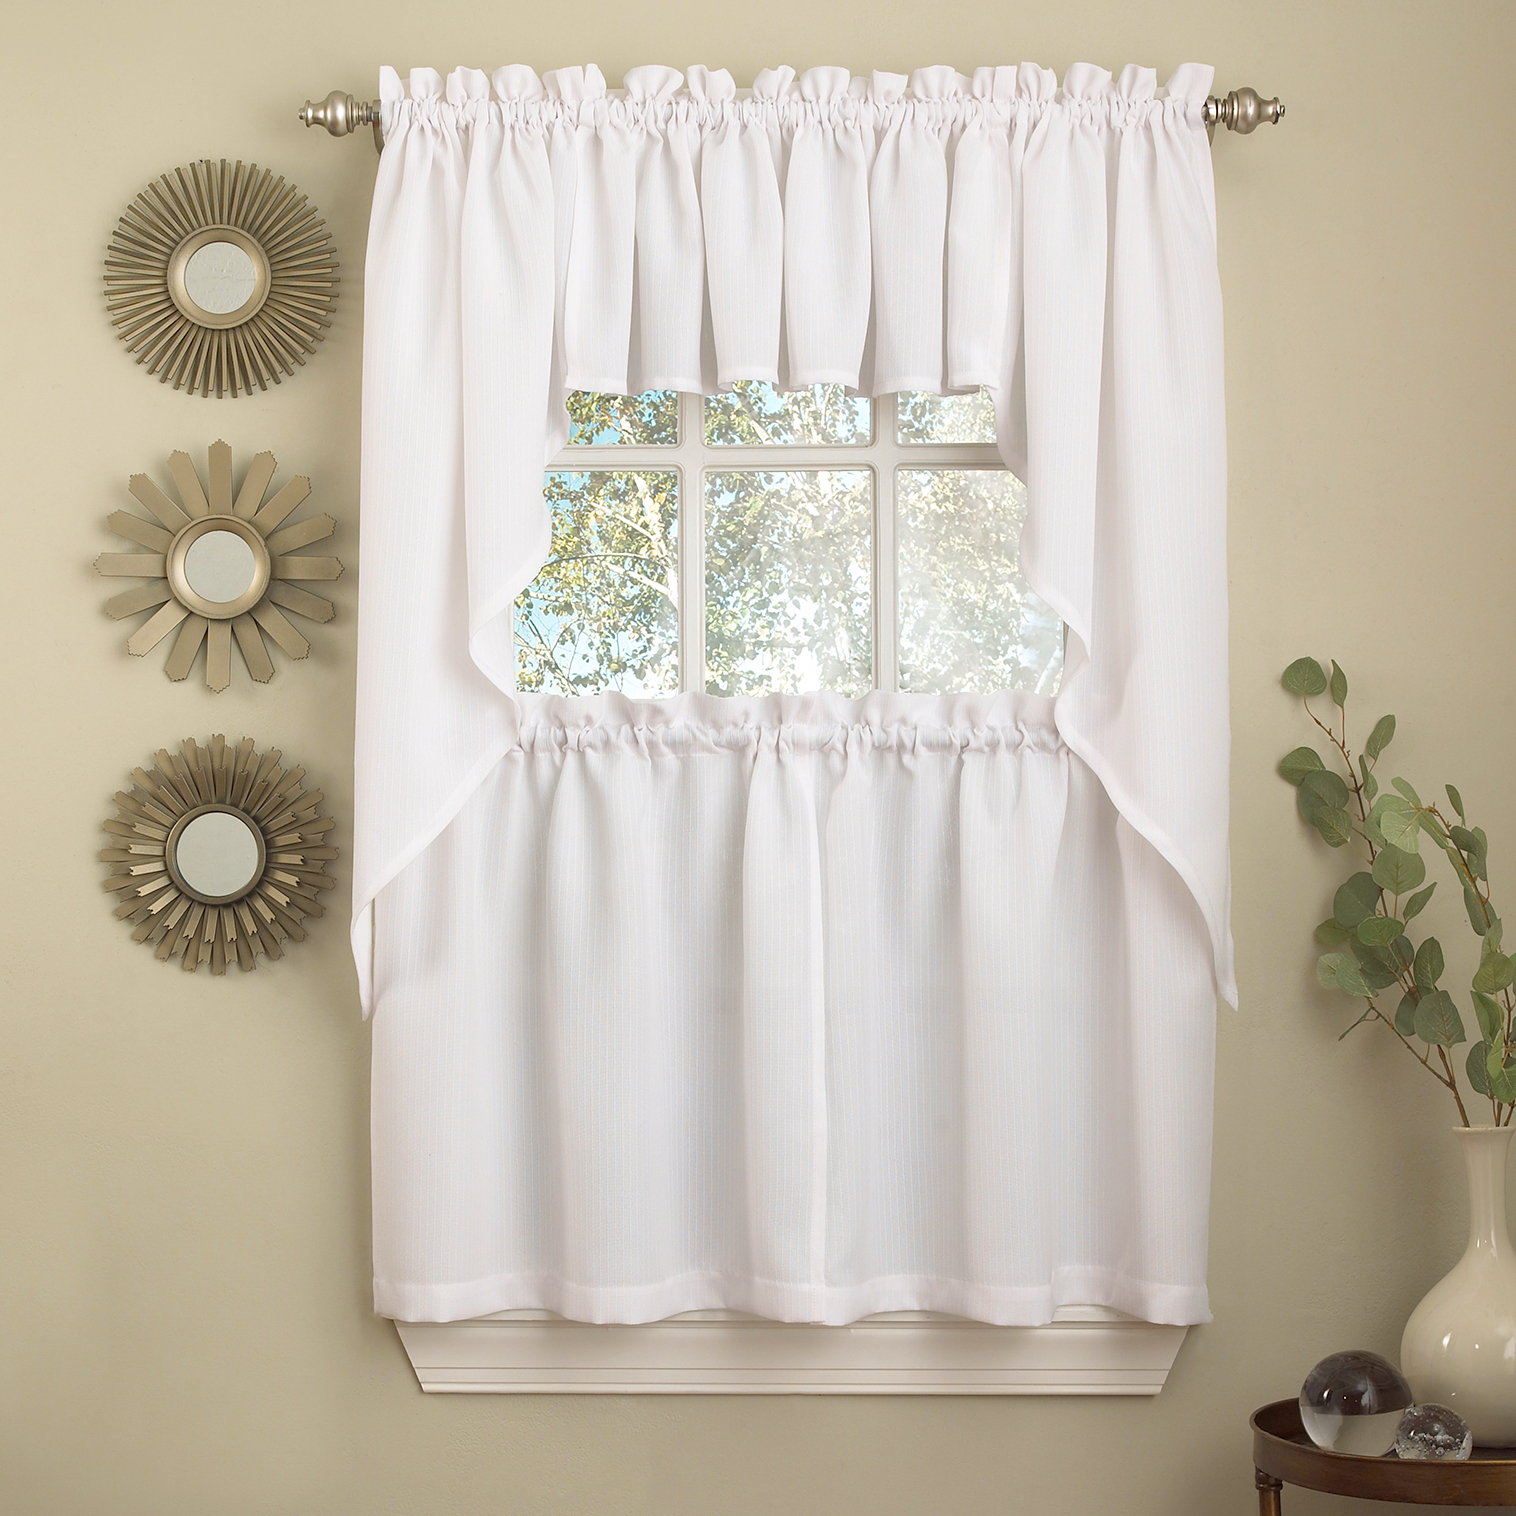 Details About White Solid Opaque Ribcord Kitchen Curtains – Choice Of Tiers Valance Or Swag With Regard To Popular Floral Embroidered Sheer Kitchen Curtain Tiers, Swags And Valances (View 11 of 20)